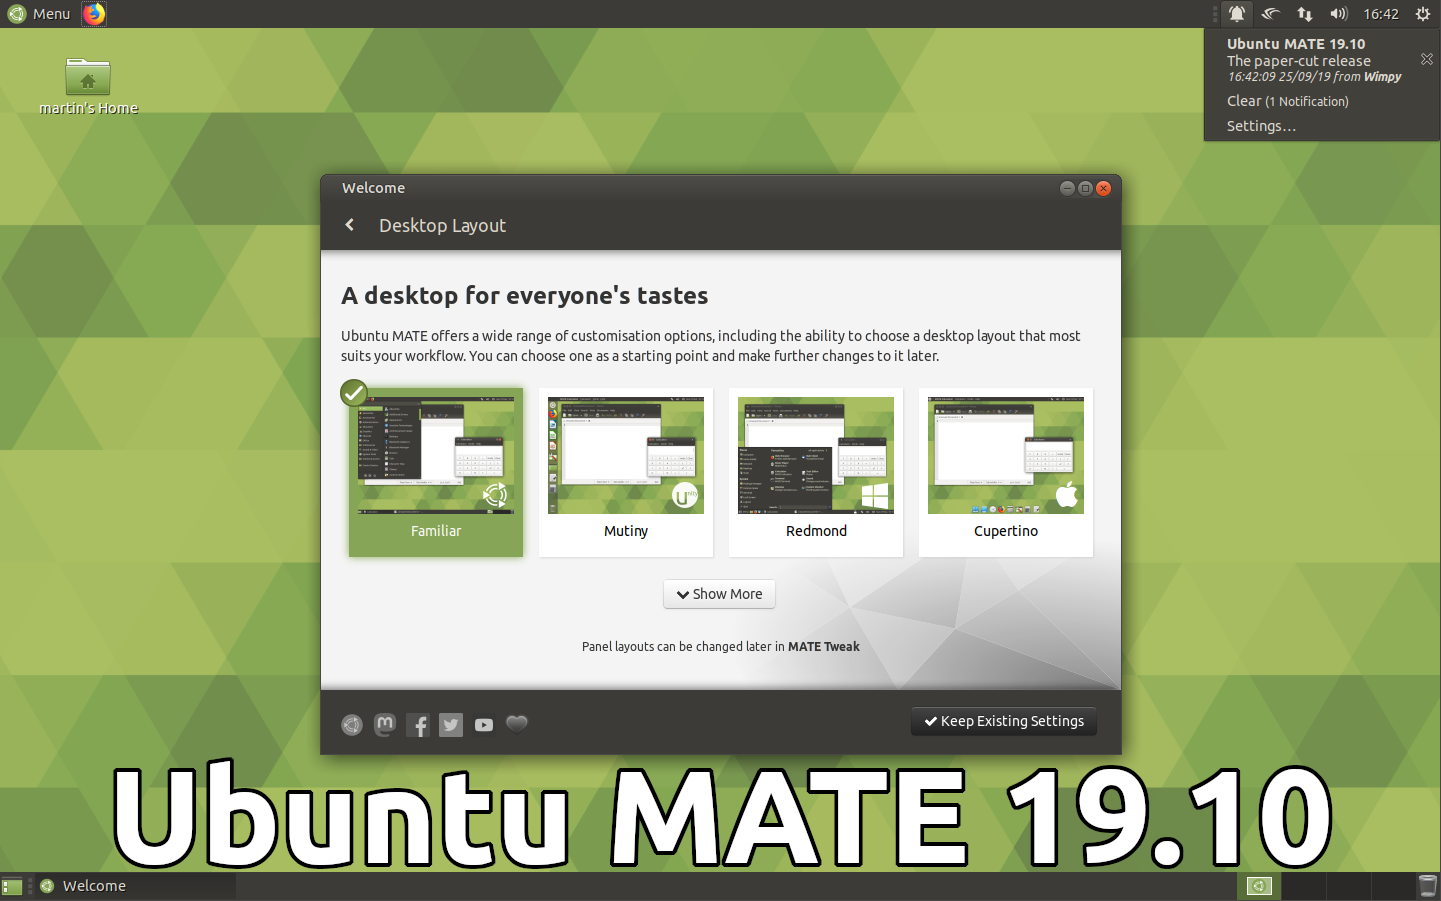 Ubuntu MATE 19.10 Beta